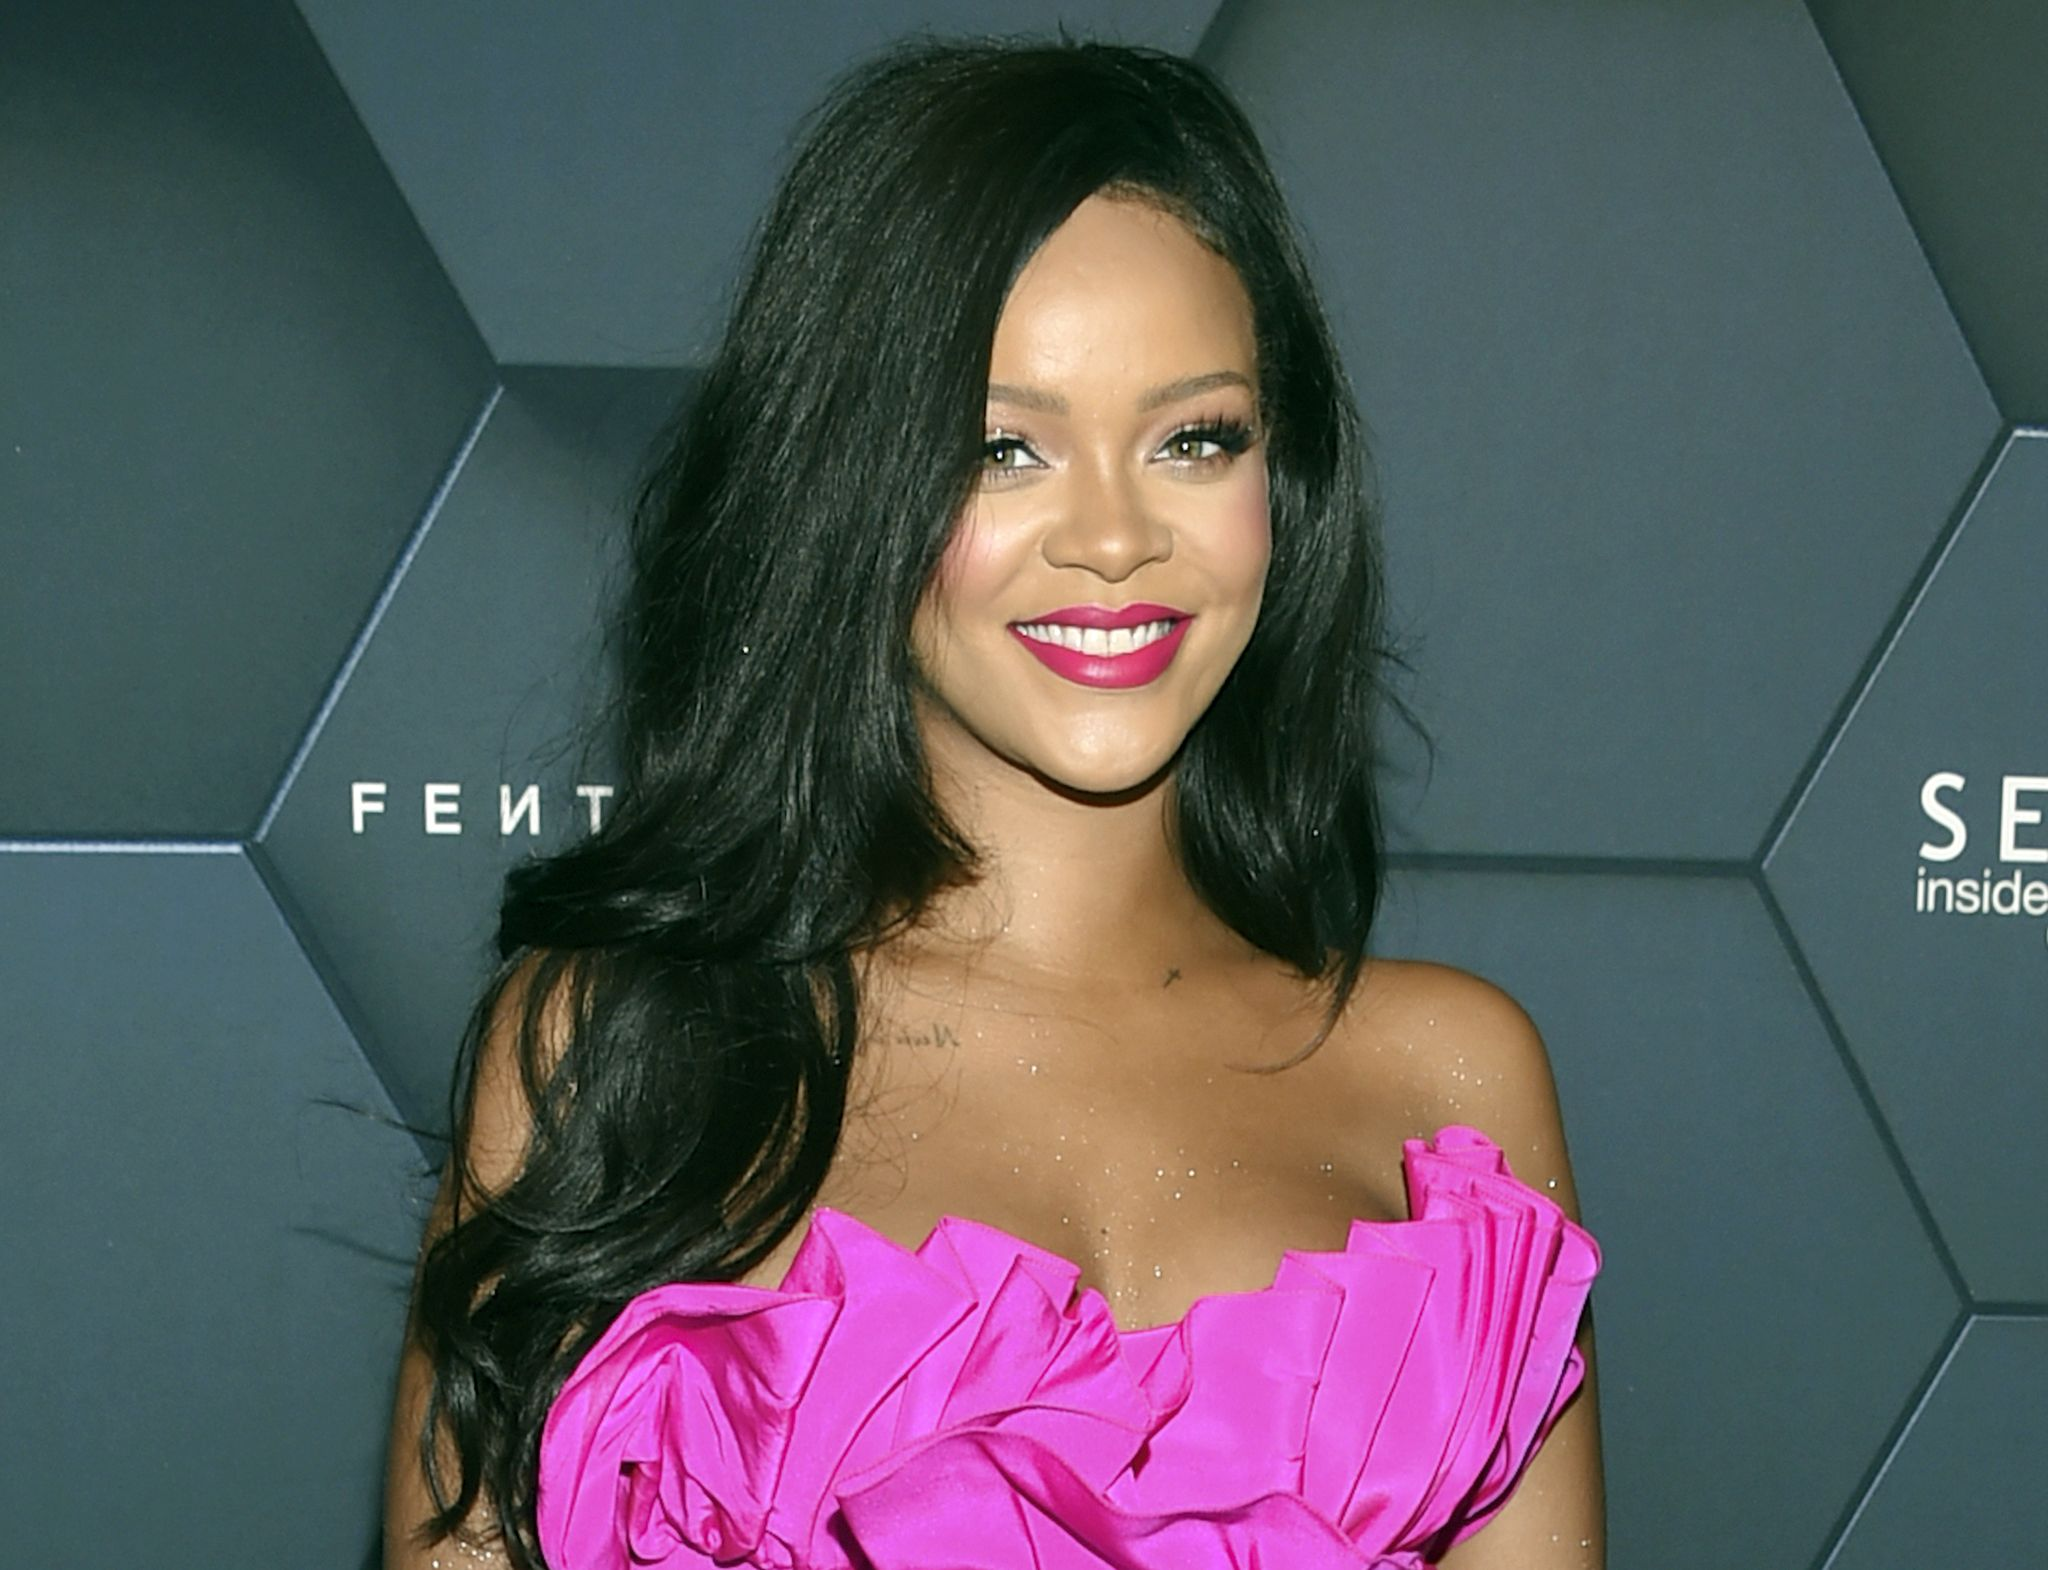 Rihanna snubs Super Bowl halftime show to support Colin Kaepernick: Report - Was...